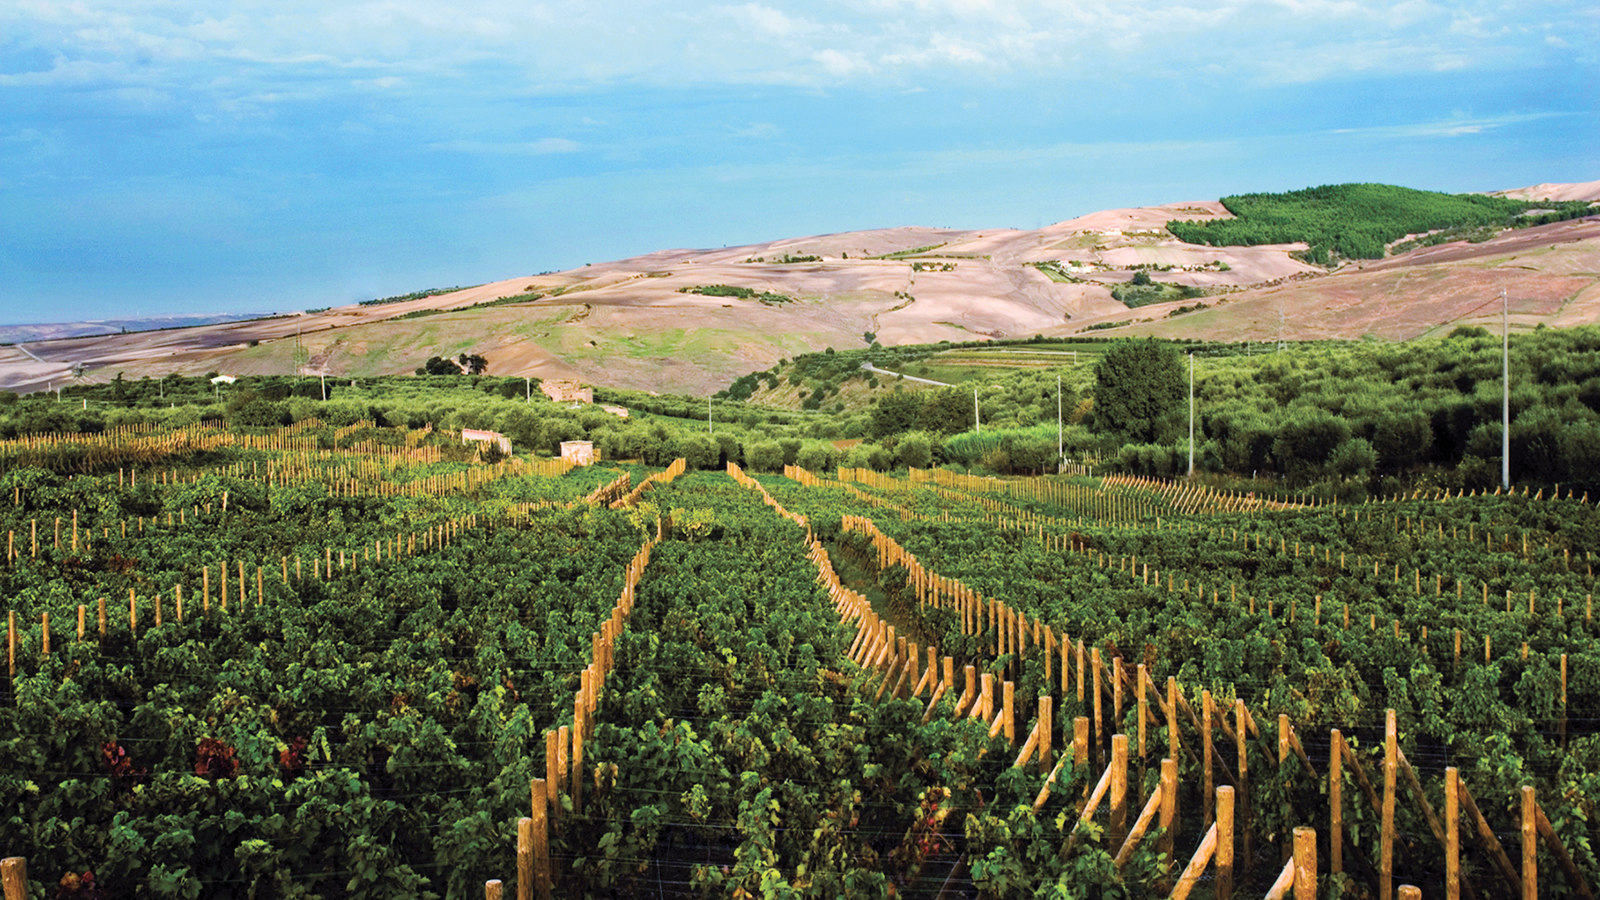 Despite southern Italy having many economically improverished parts of the country, places like Basilicata are capable of producing wines fit for kings and queens. Image credit:  Wine Spectator